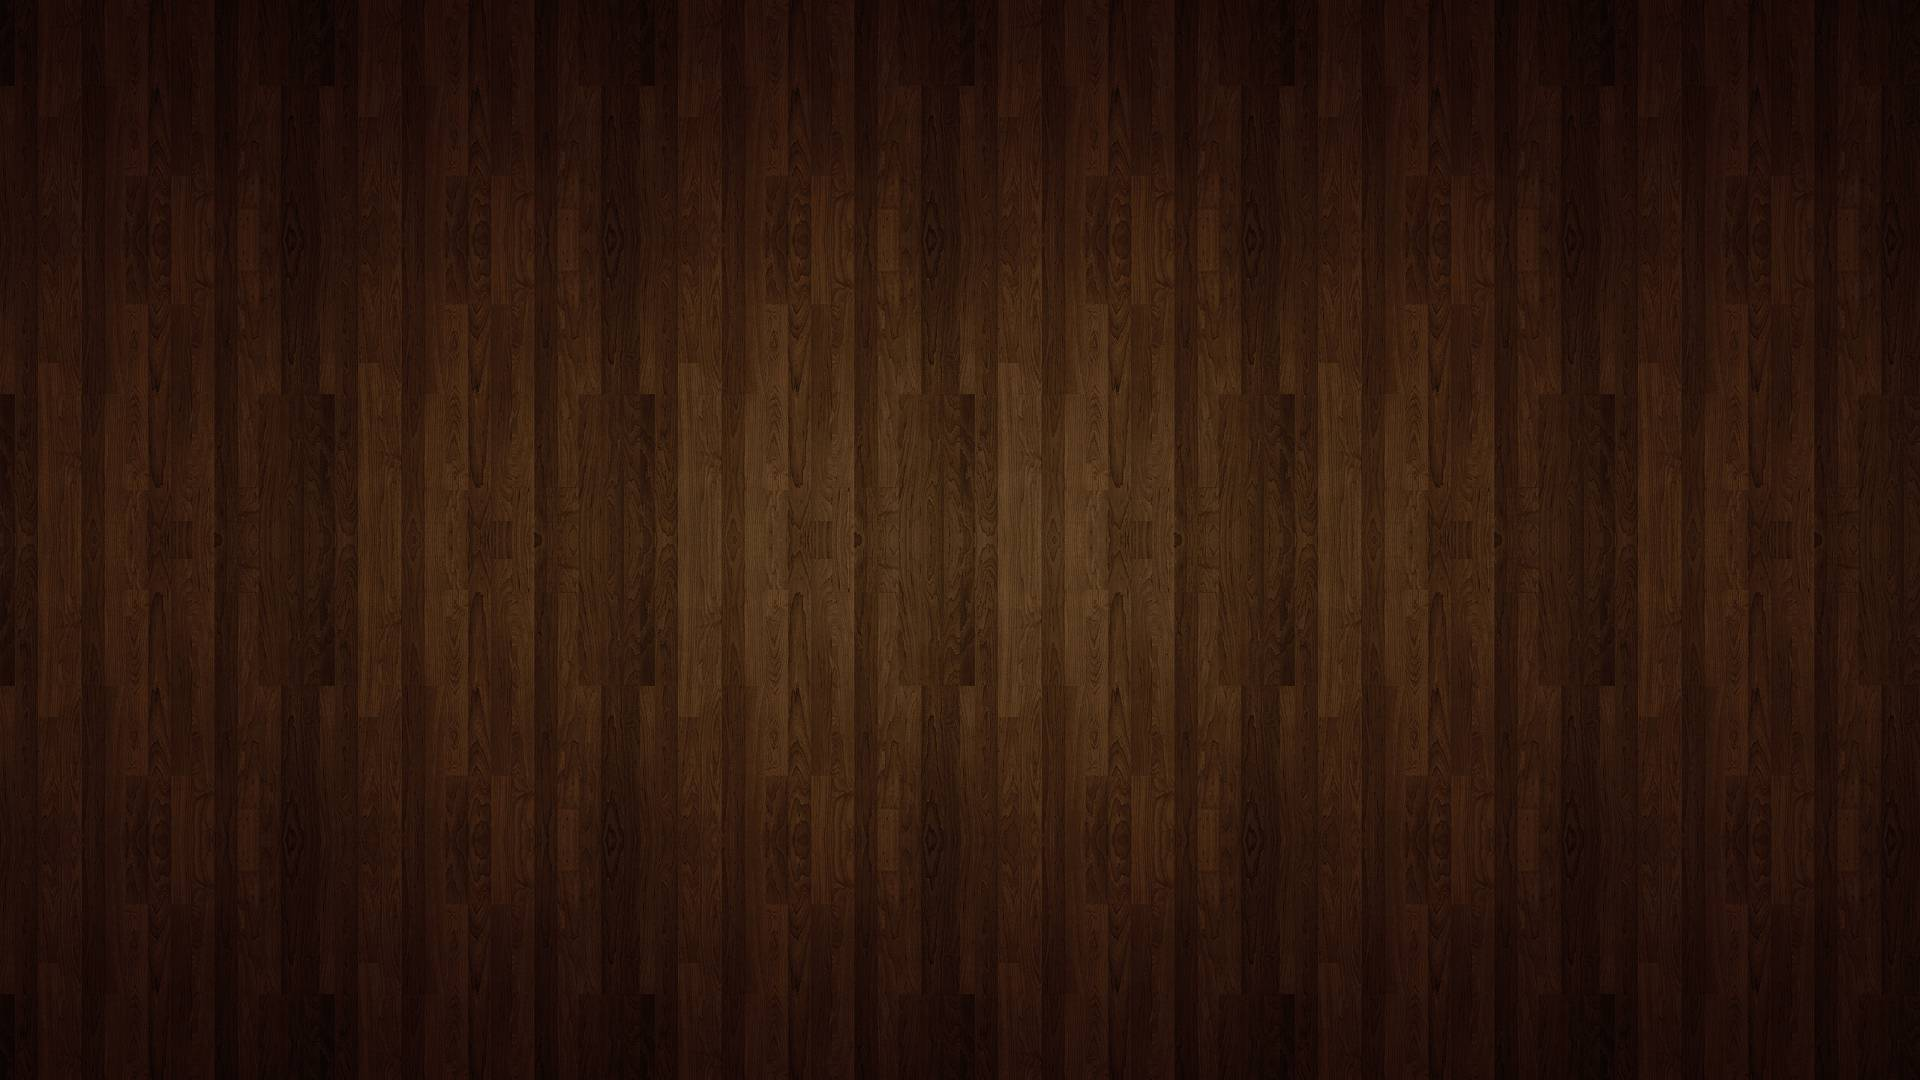 Wood Grain Wallpaper 15242 15714 Hd Wallpapers Yogatique Bangkok